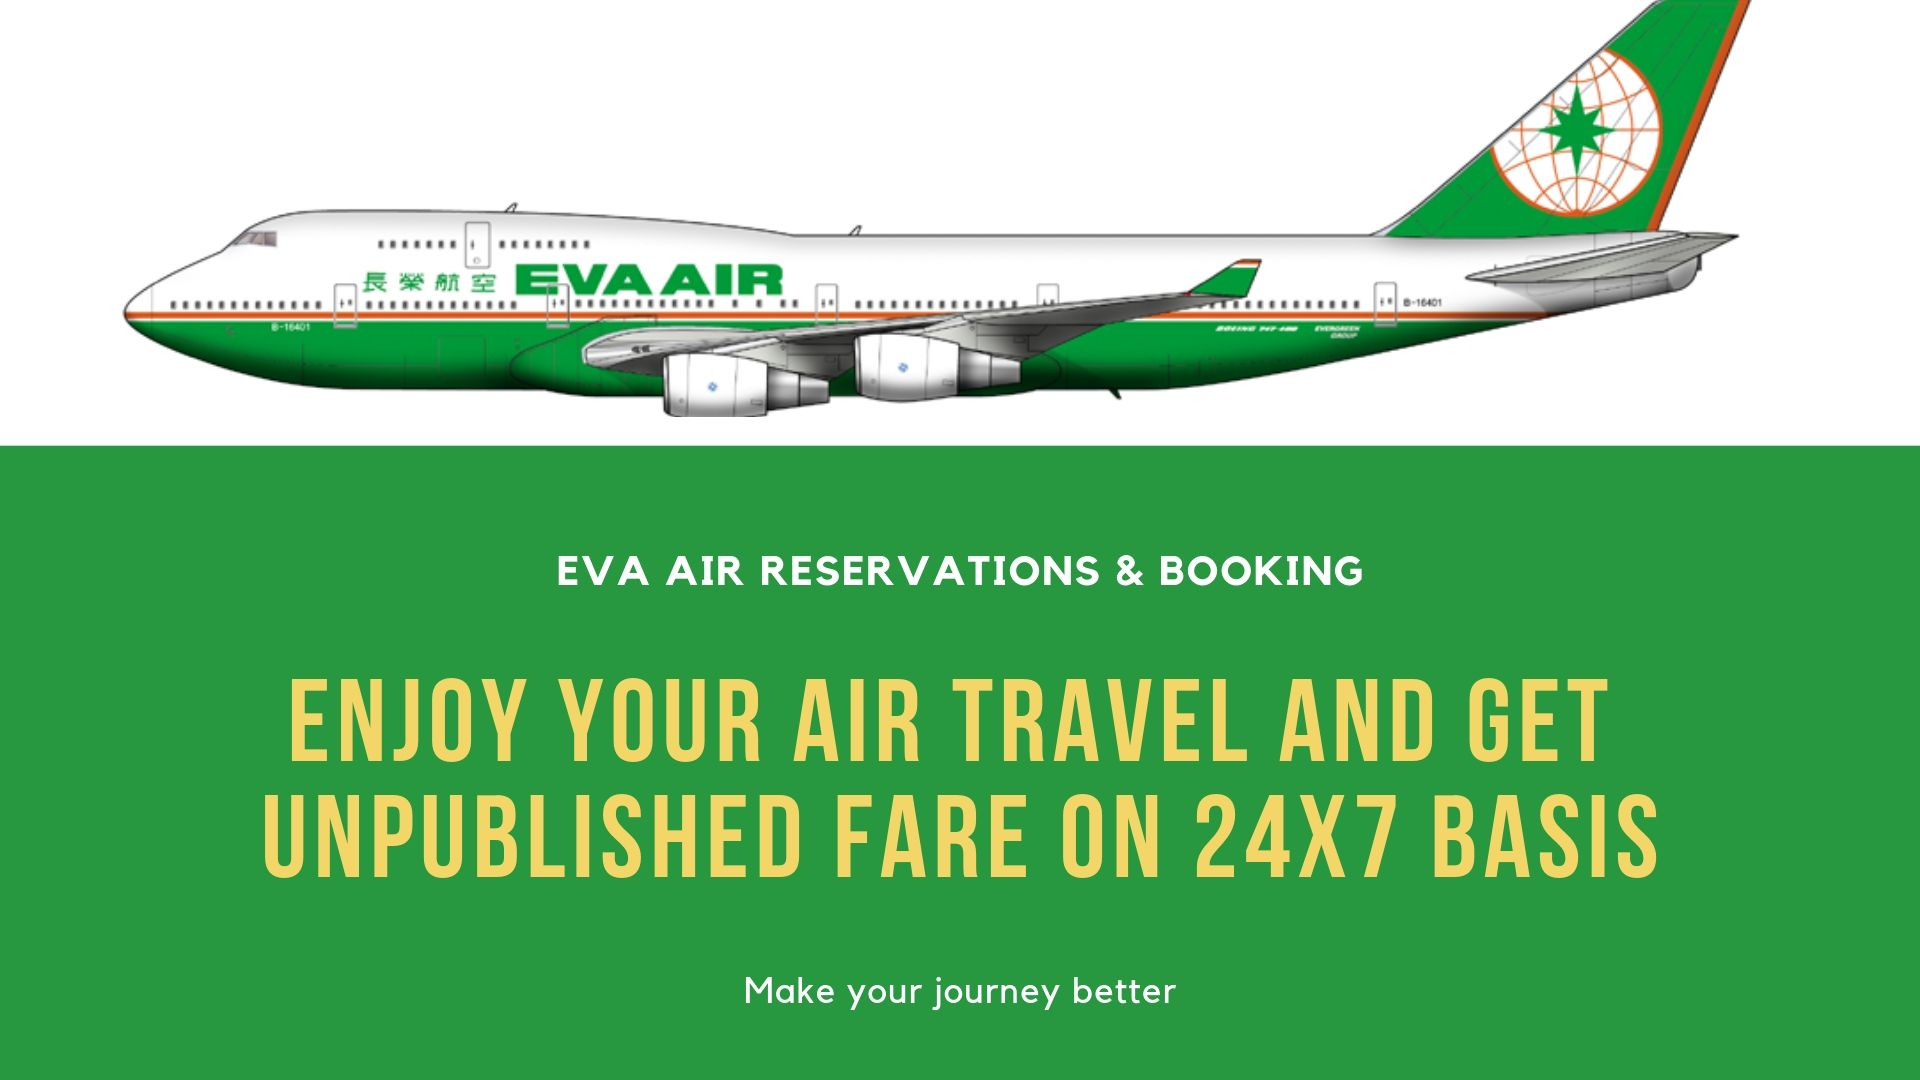 Get the Best deal and get lowest airfares on Eva airlines